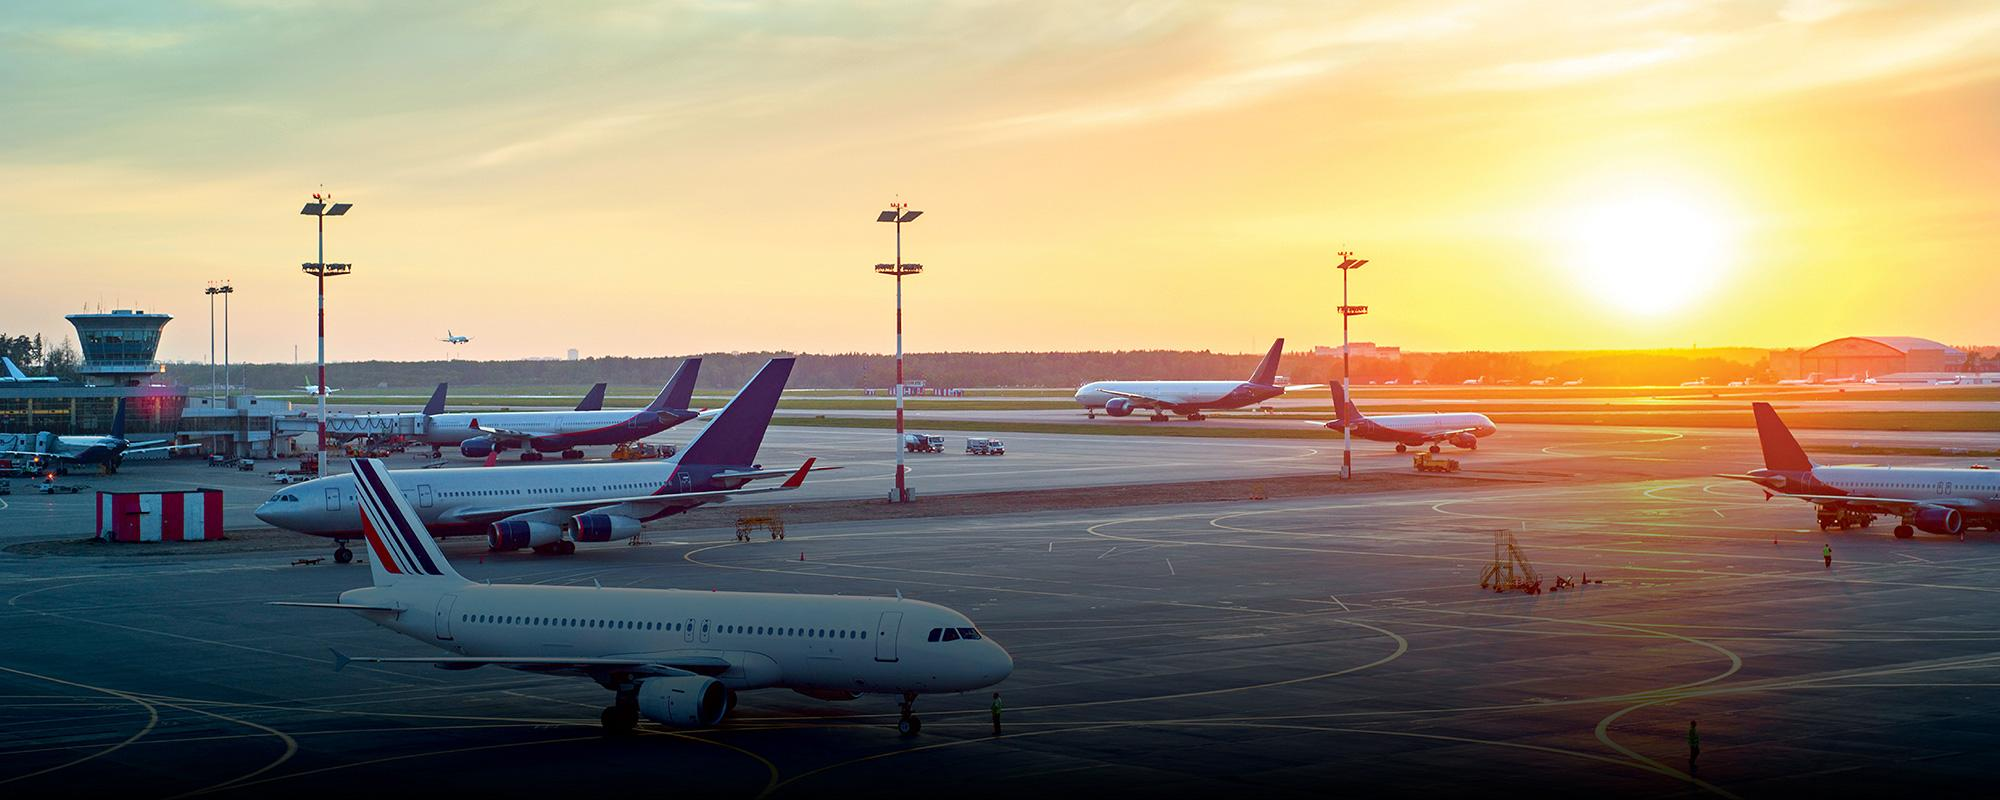 airport view at sunrise